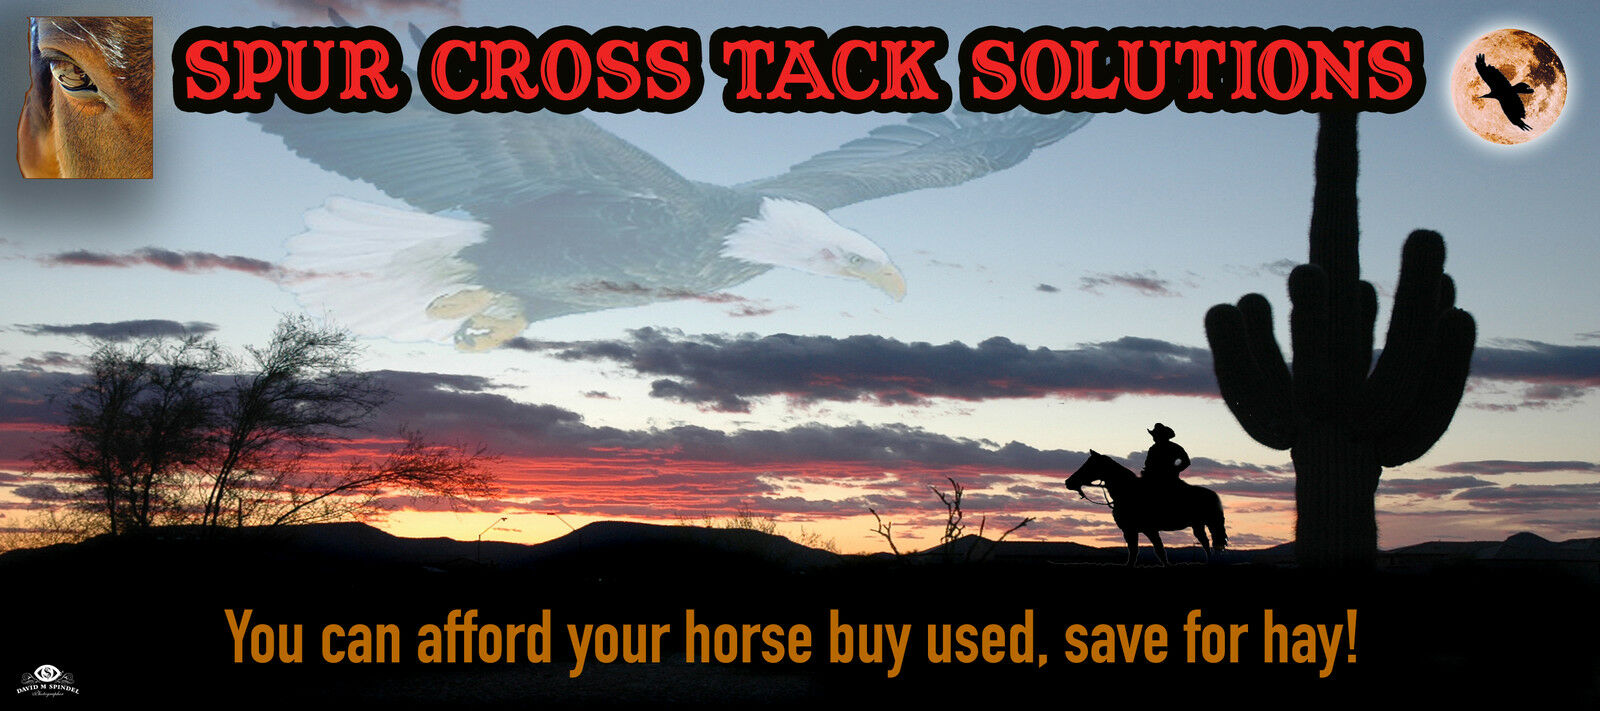 Spur Cross Tack Solutions